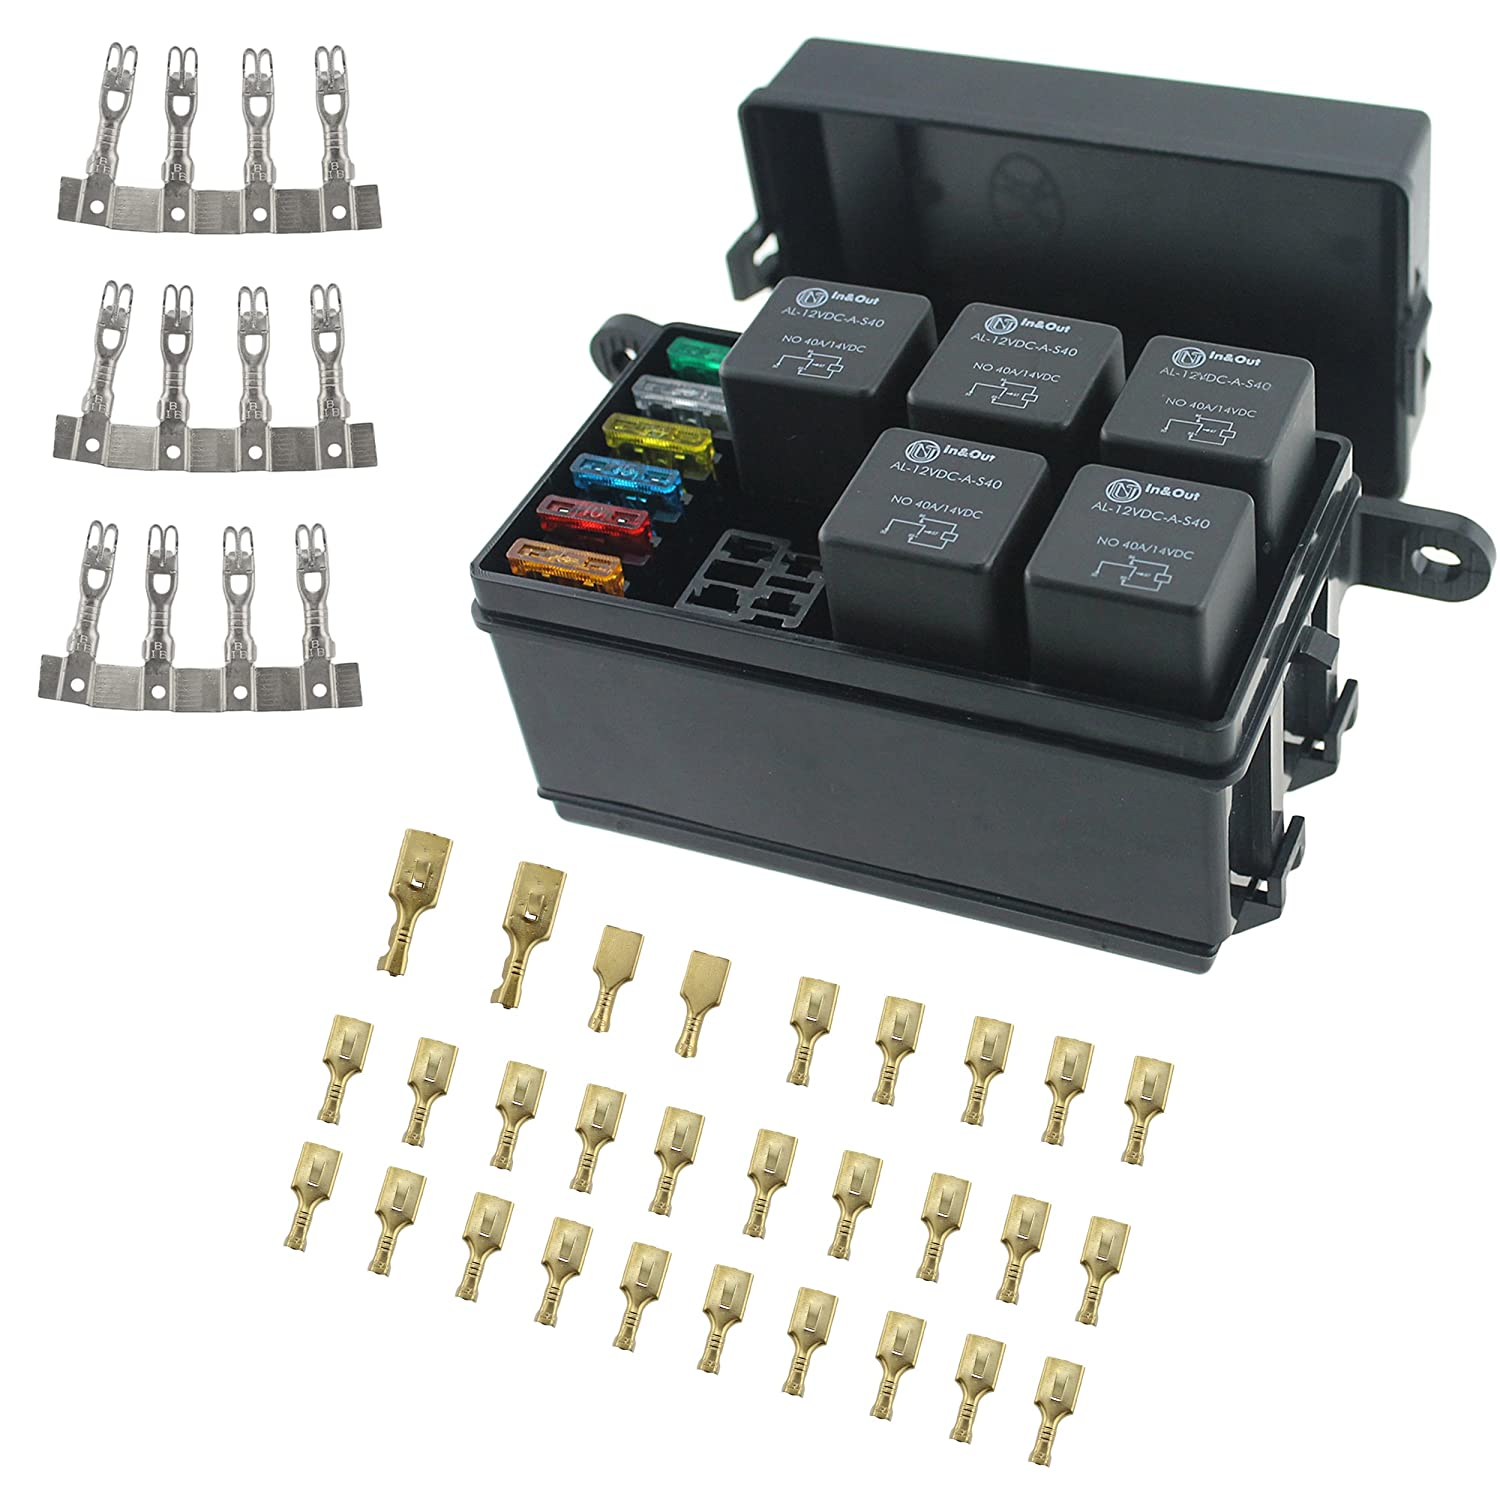 Iztor Universal 6 Way Blade Fuse Holder Box With Spade Terminals For Car Truck Trailer And Boat